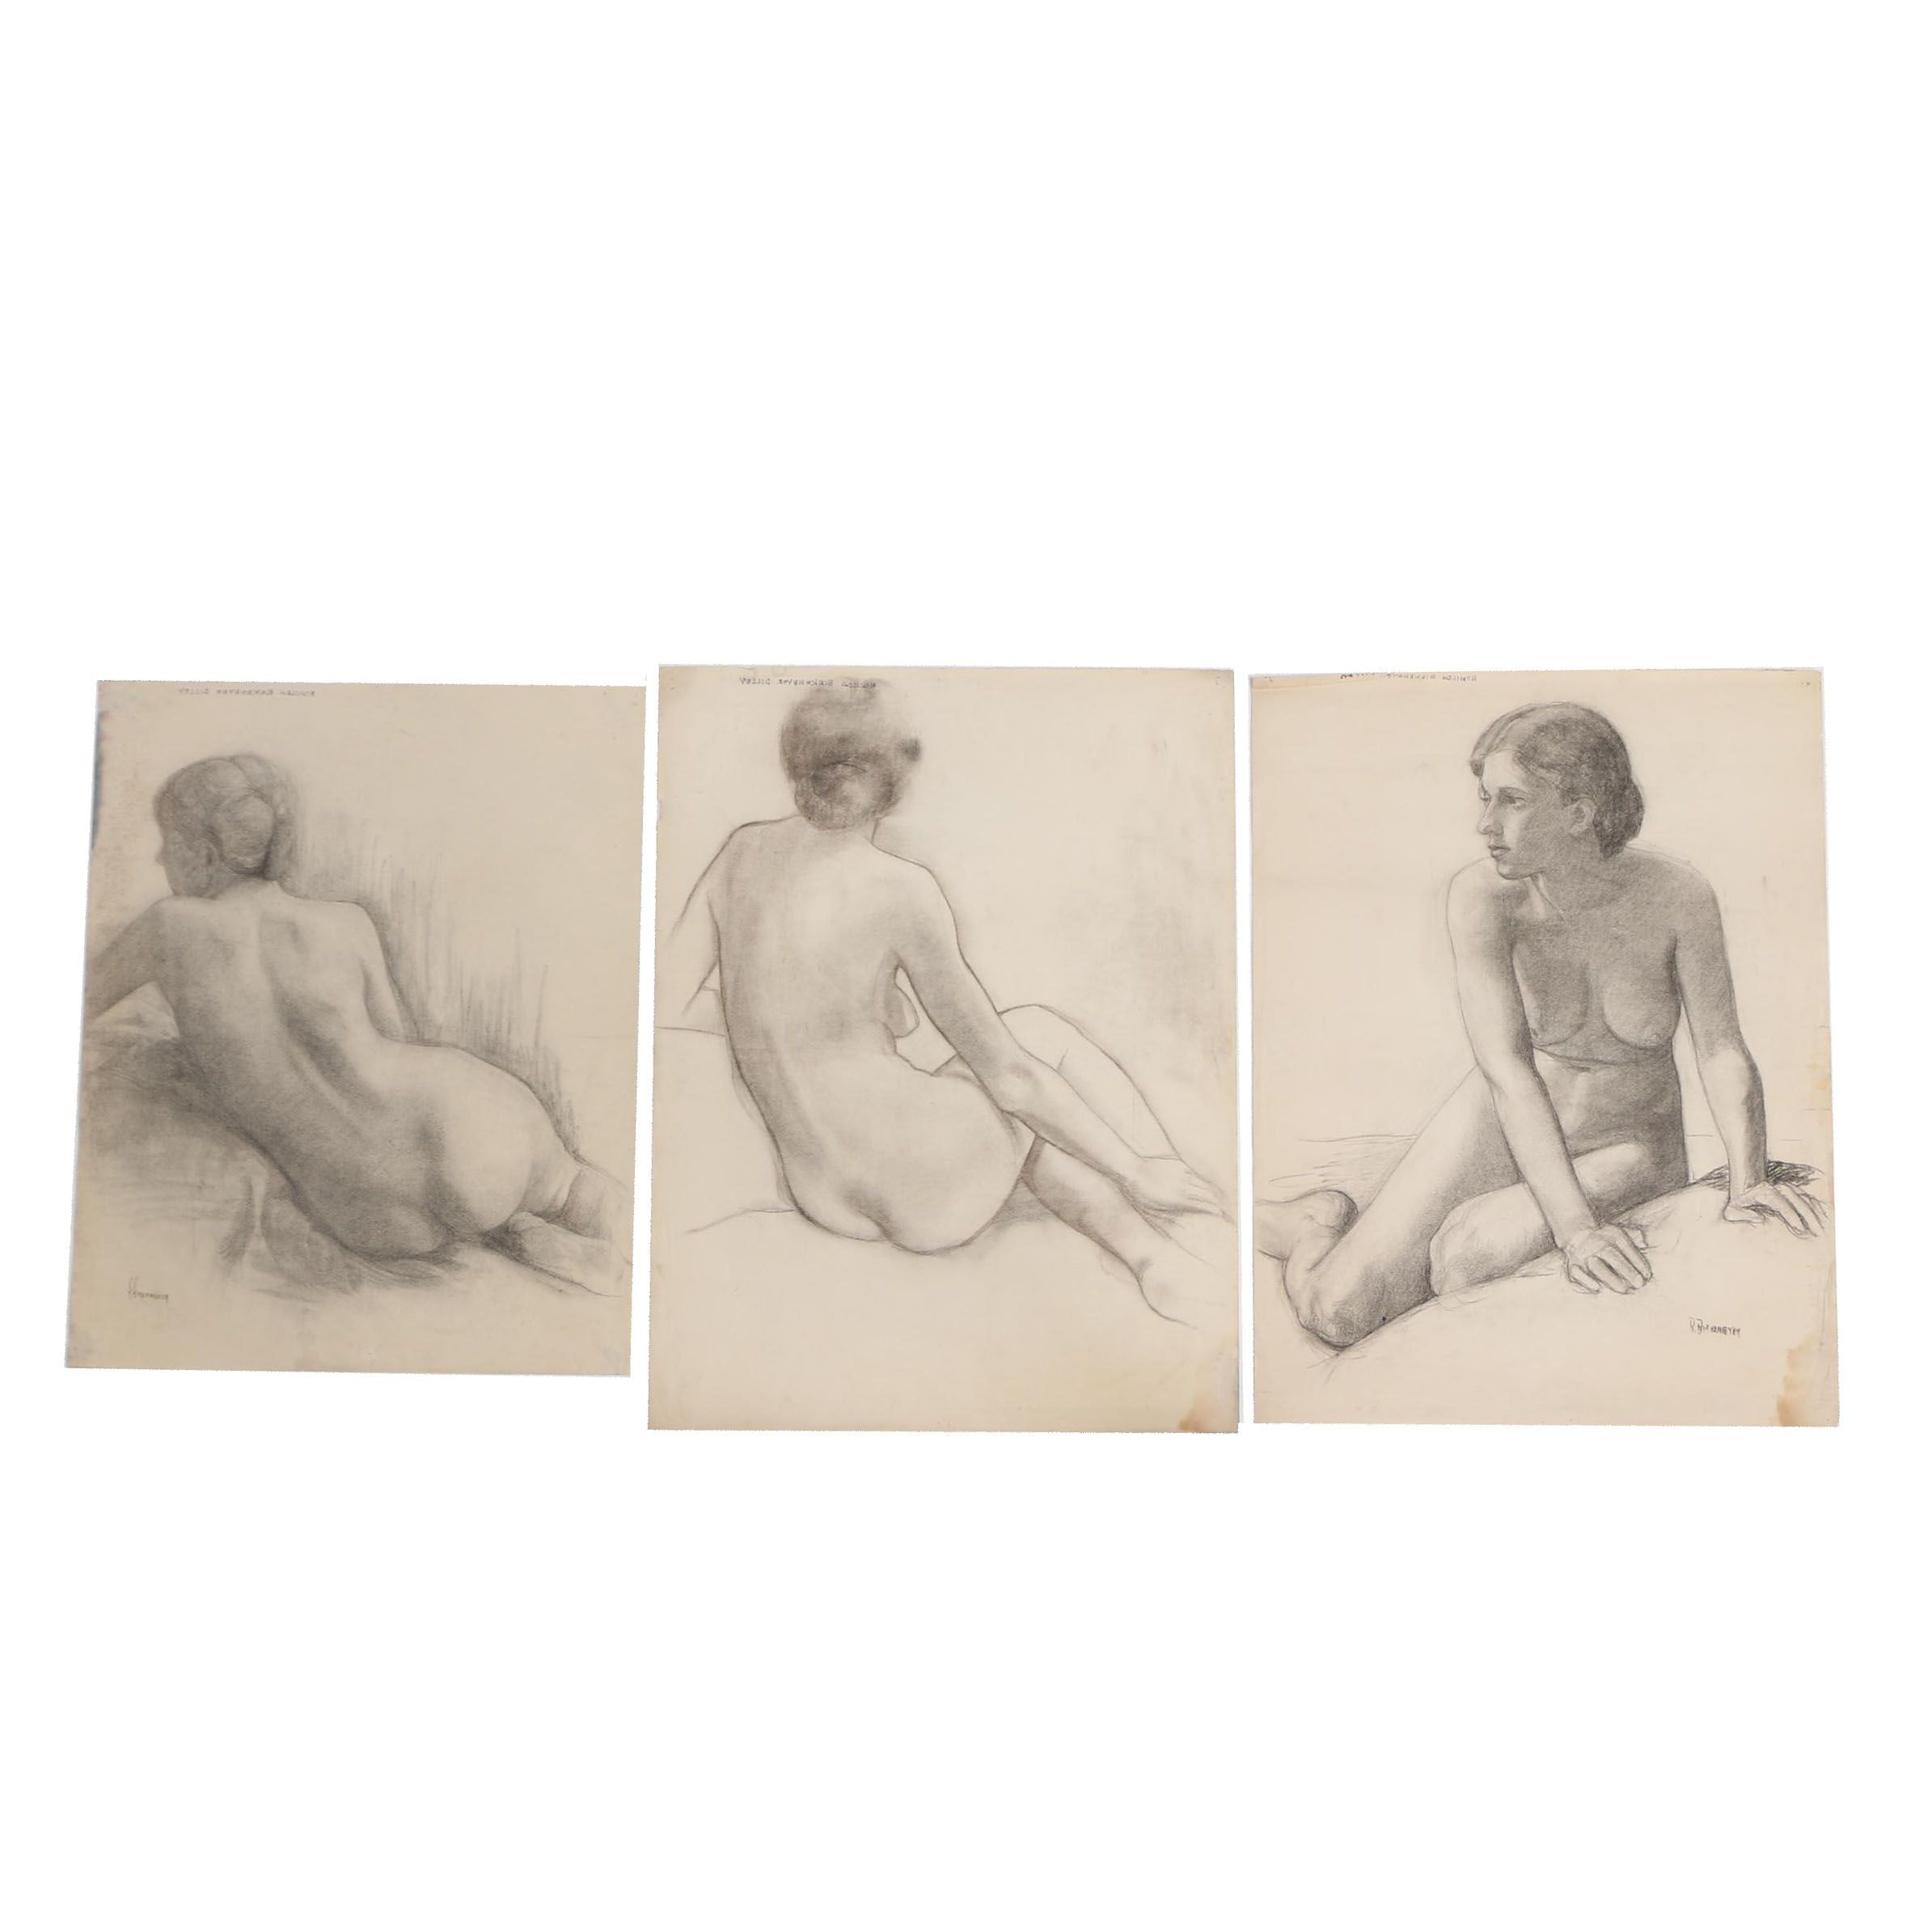 Romilda Birkemeyer Dilley Charcoal Drawings of Female Nudes